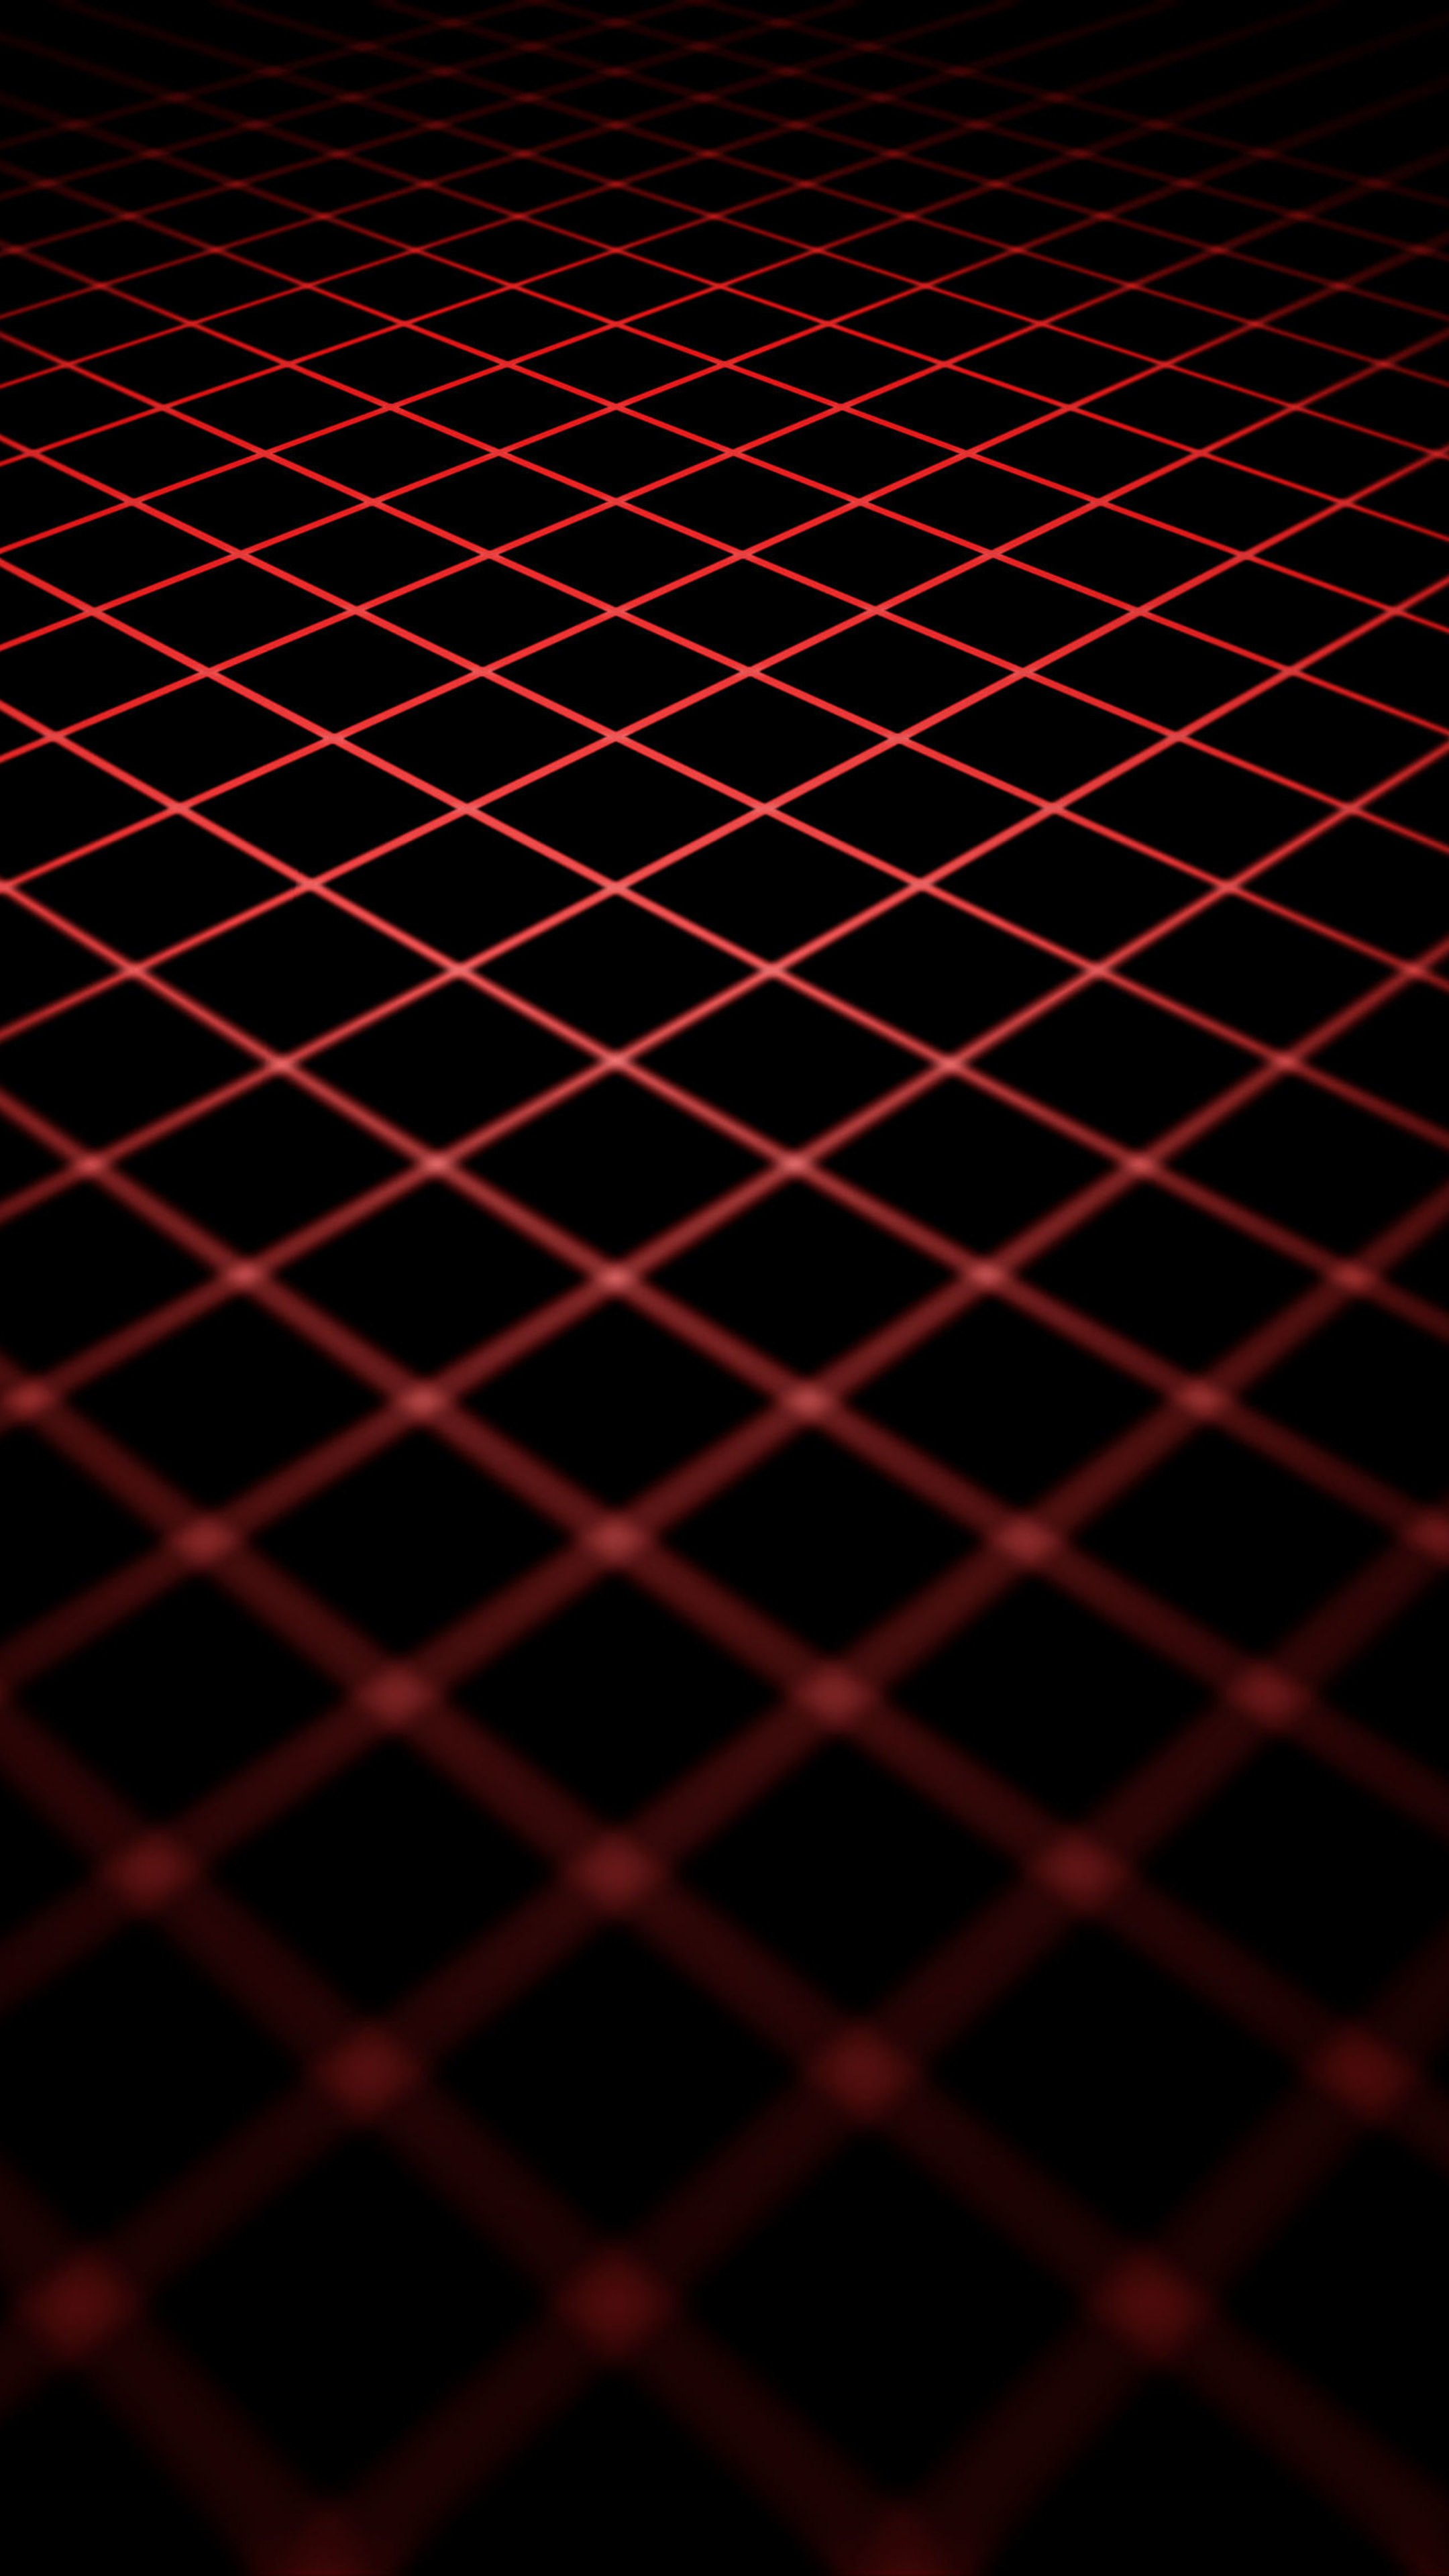 Car Wallpapers Reddit 3d Abstract Lines Dq Wallpaper 2160x3840